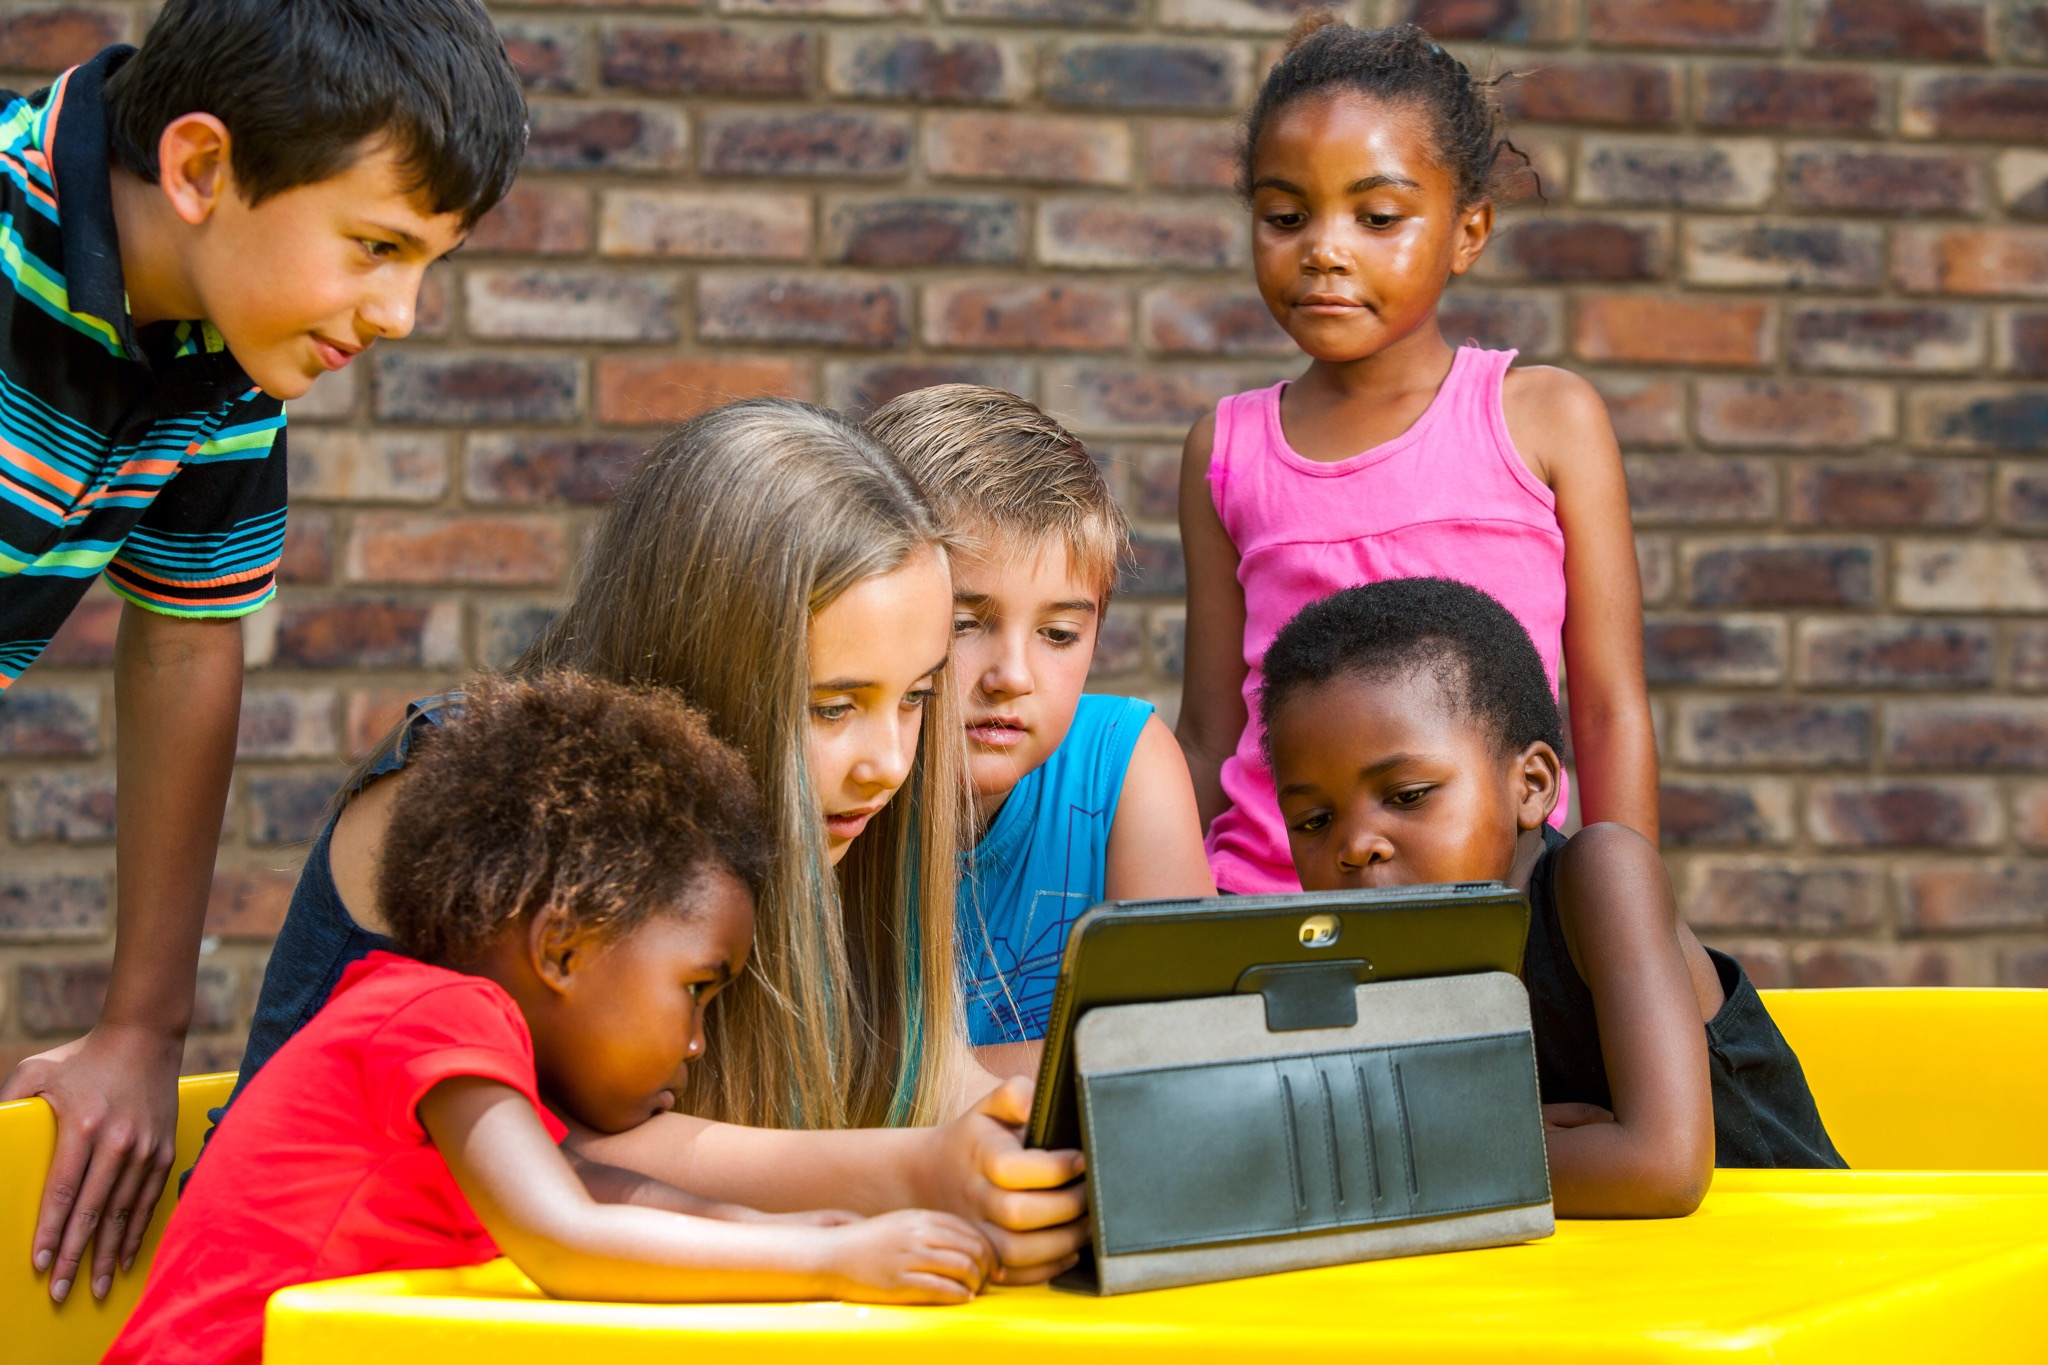 Children looking at a tablet